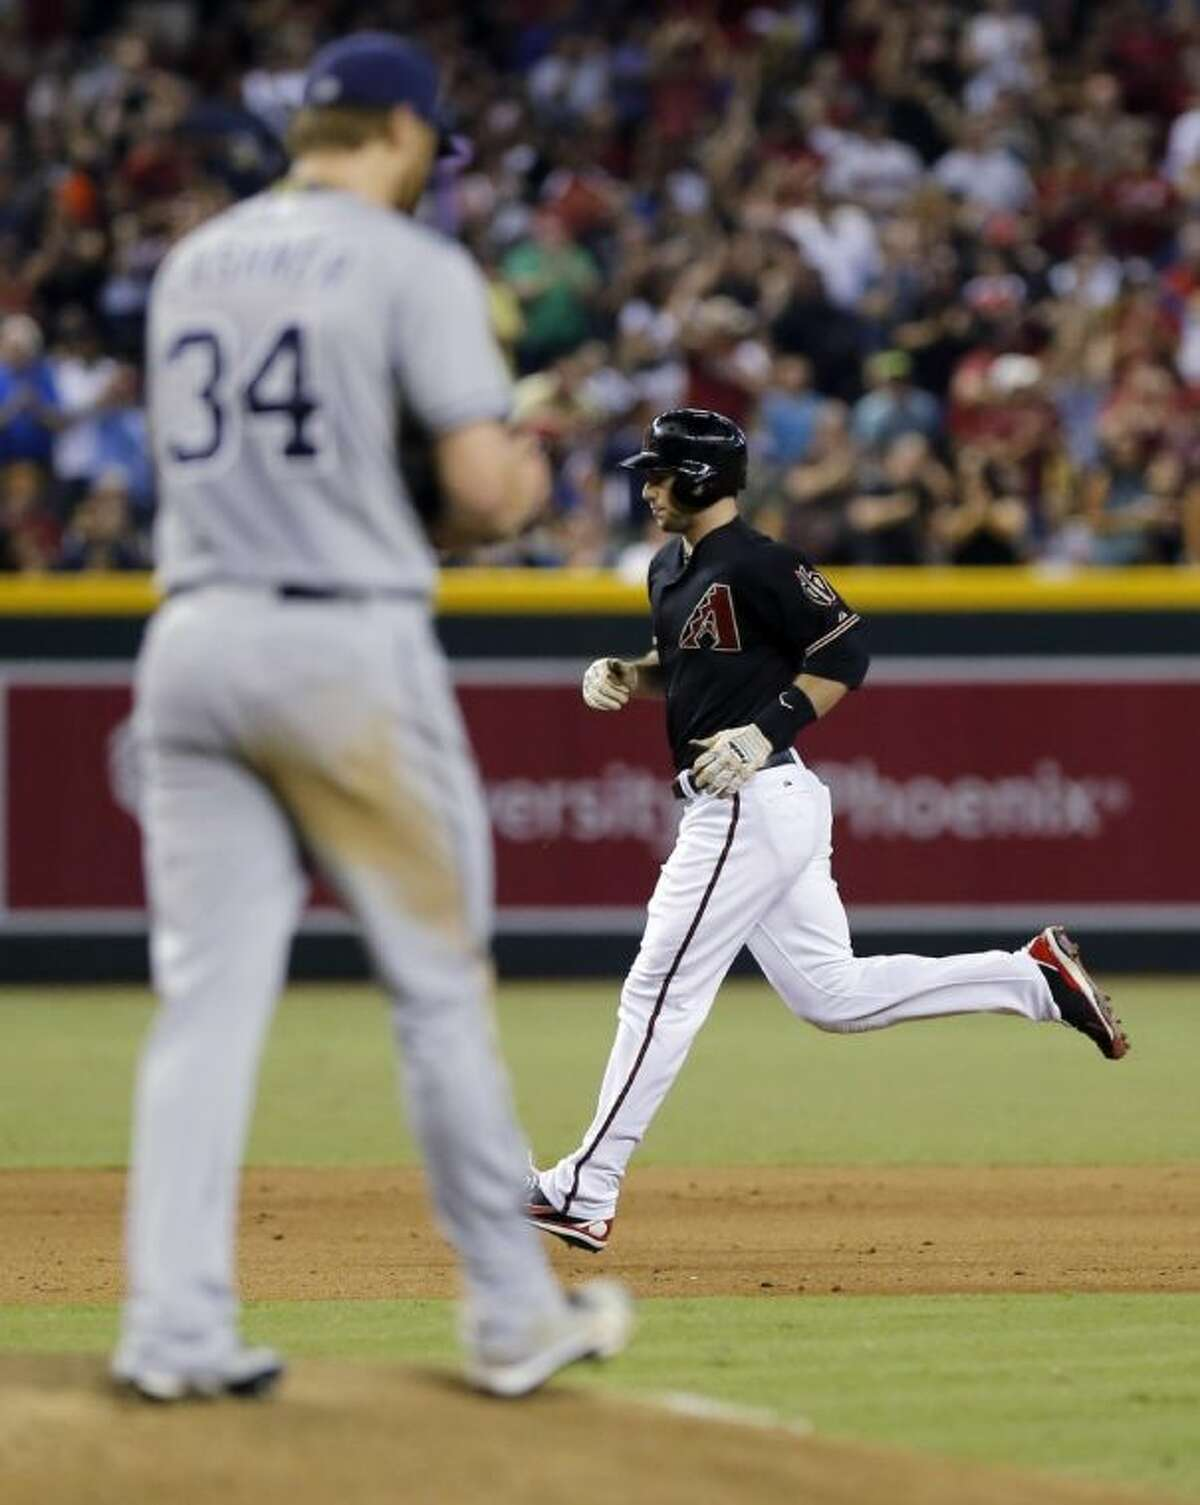 Arizona Diamondbacks first baseman Paul Goldschmidt rounds the bases after hitting a two-run home run off San Diego Padres pitcher Andrew Cashner during the fifth inning on Saturday in Phoenix. The graduate of The Woodlands High School leads the National League with 85 RBI.